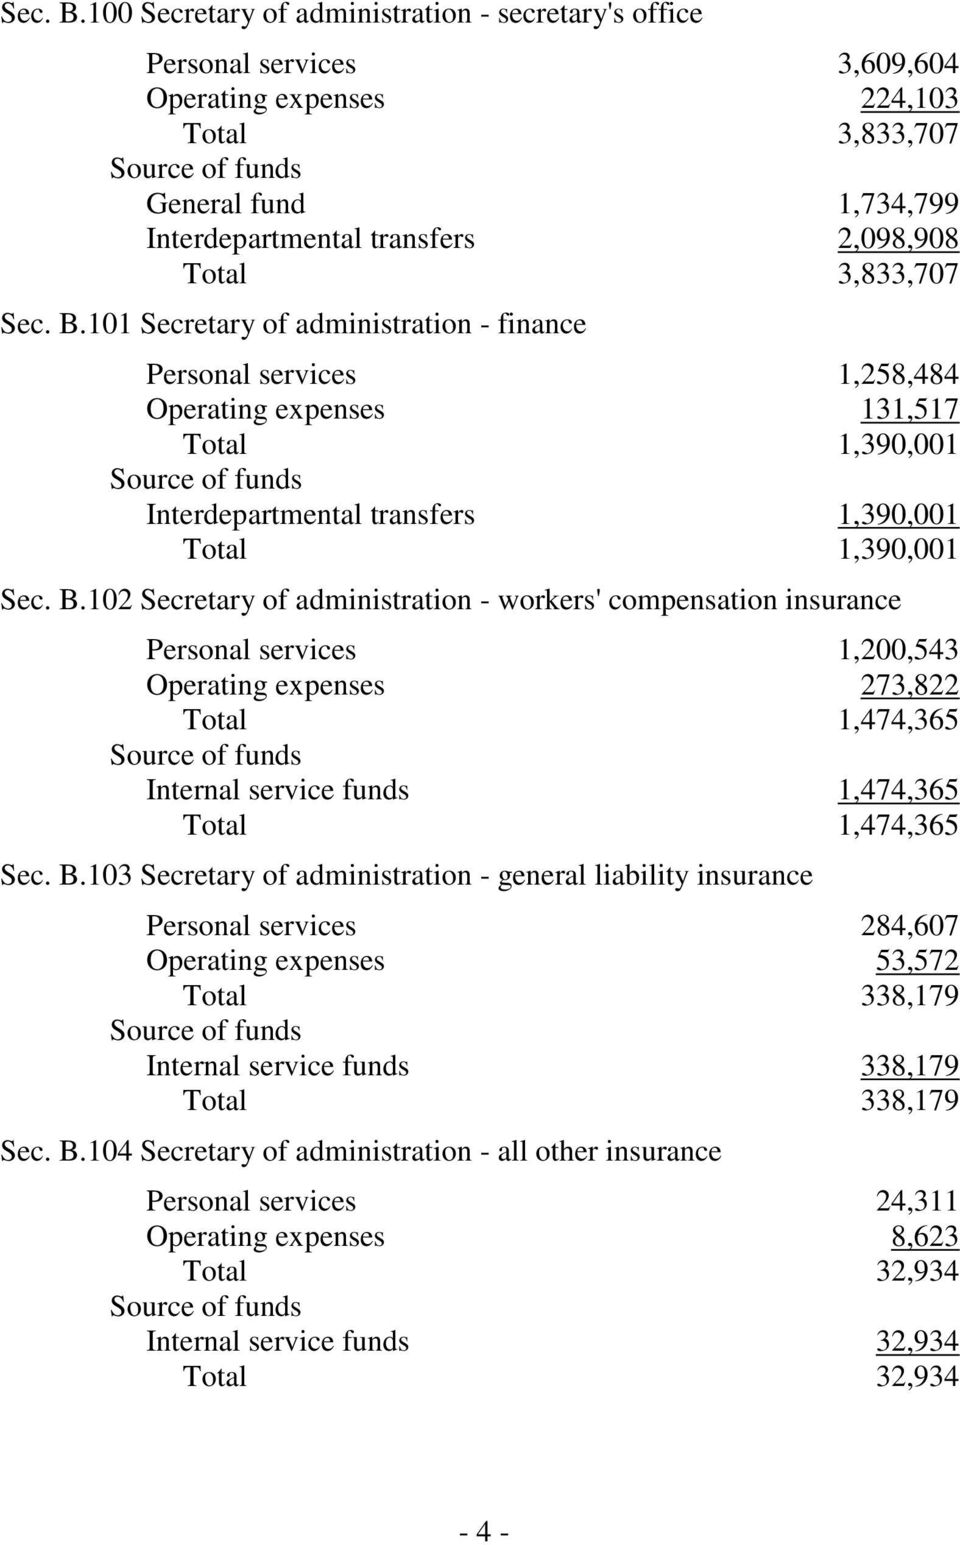 3,833,707 101 Secretary of administration - finance Personal services 1,258,484 Operating expenses 131,517 Total 1,390,001 Interdepartmental transfers 1,390,001 Total 1,390,001 102 Secretary of